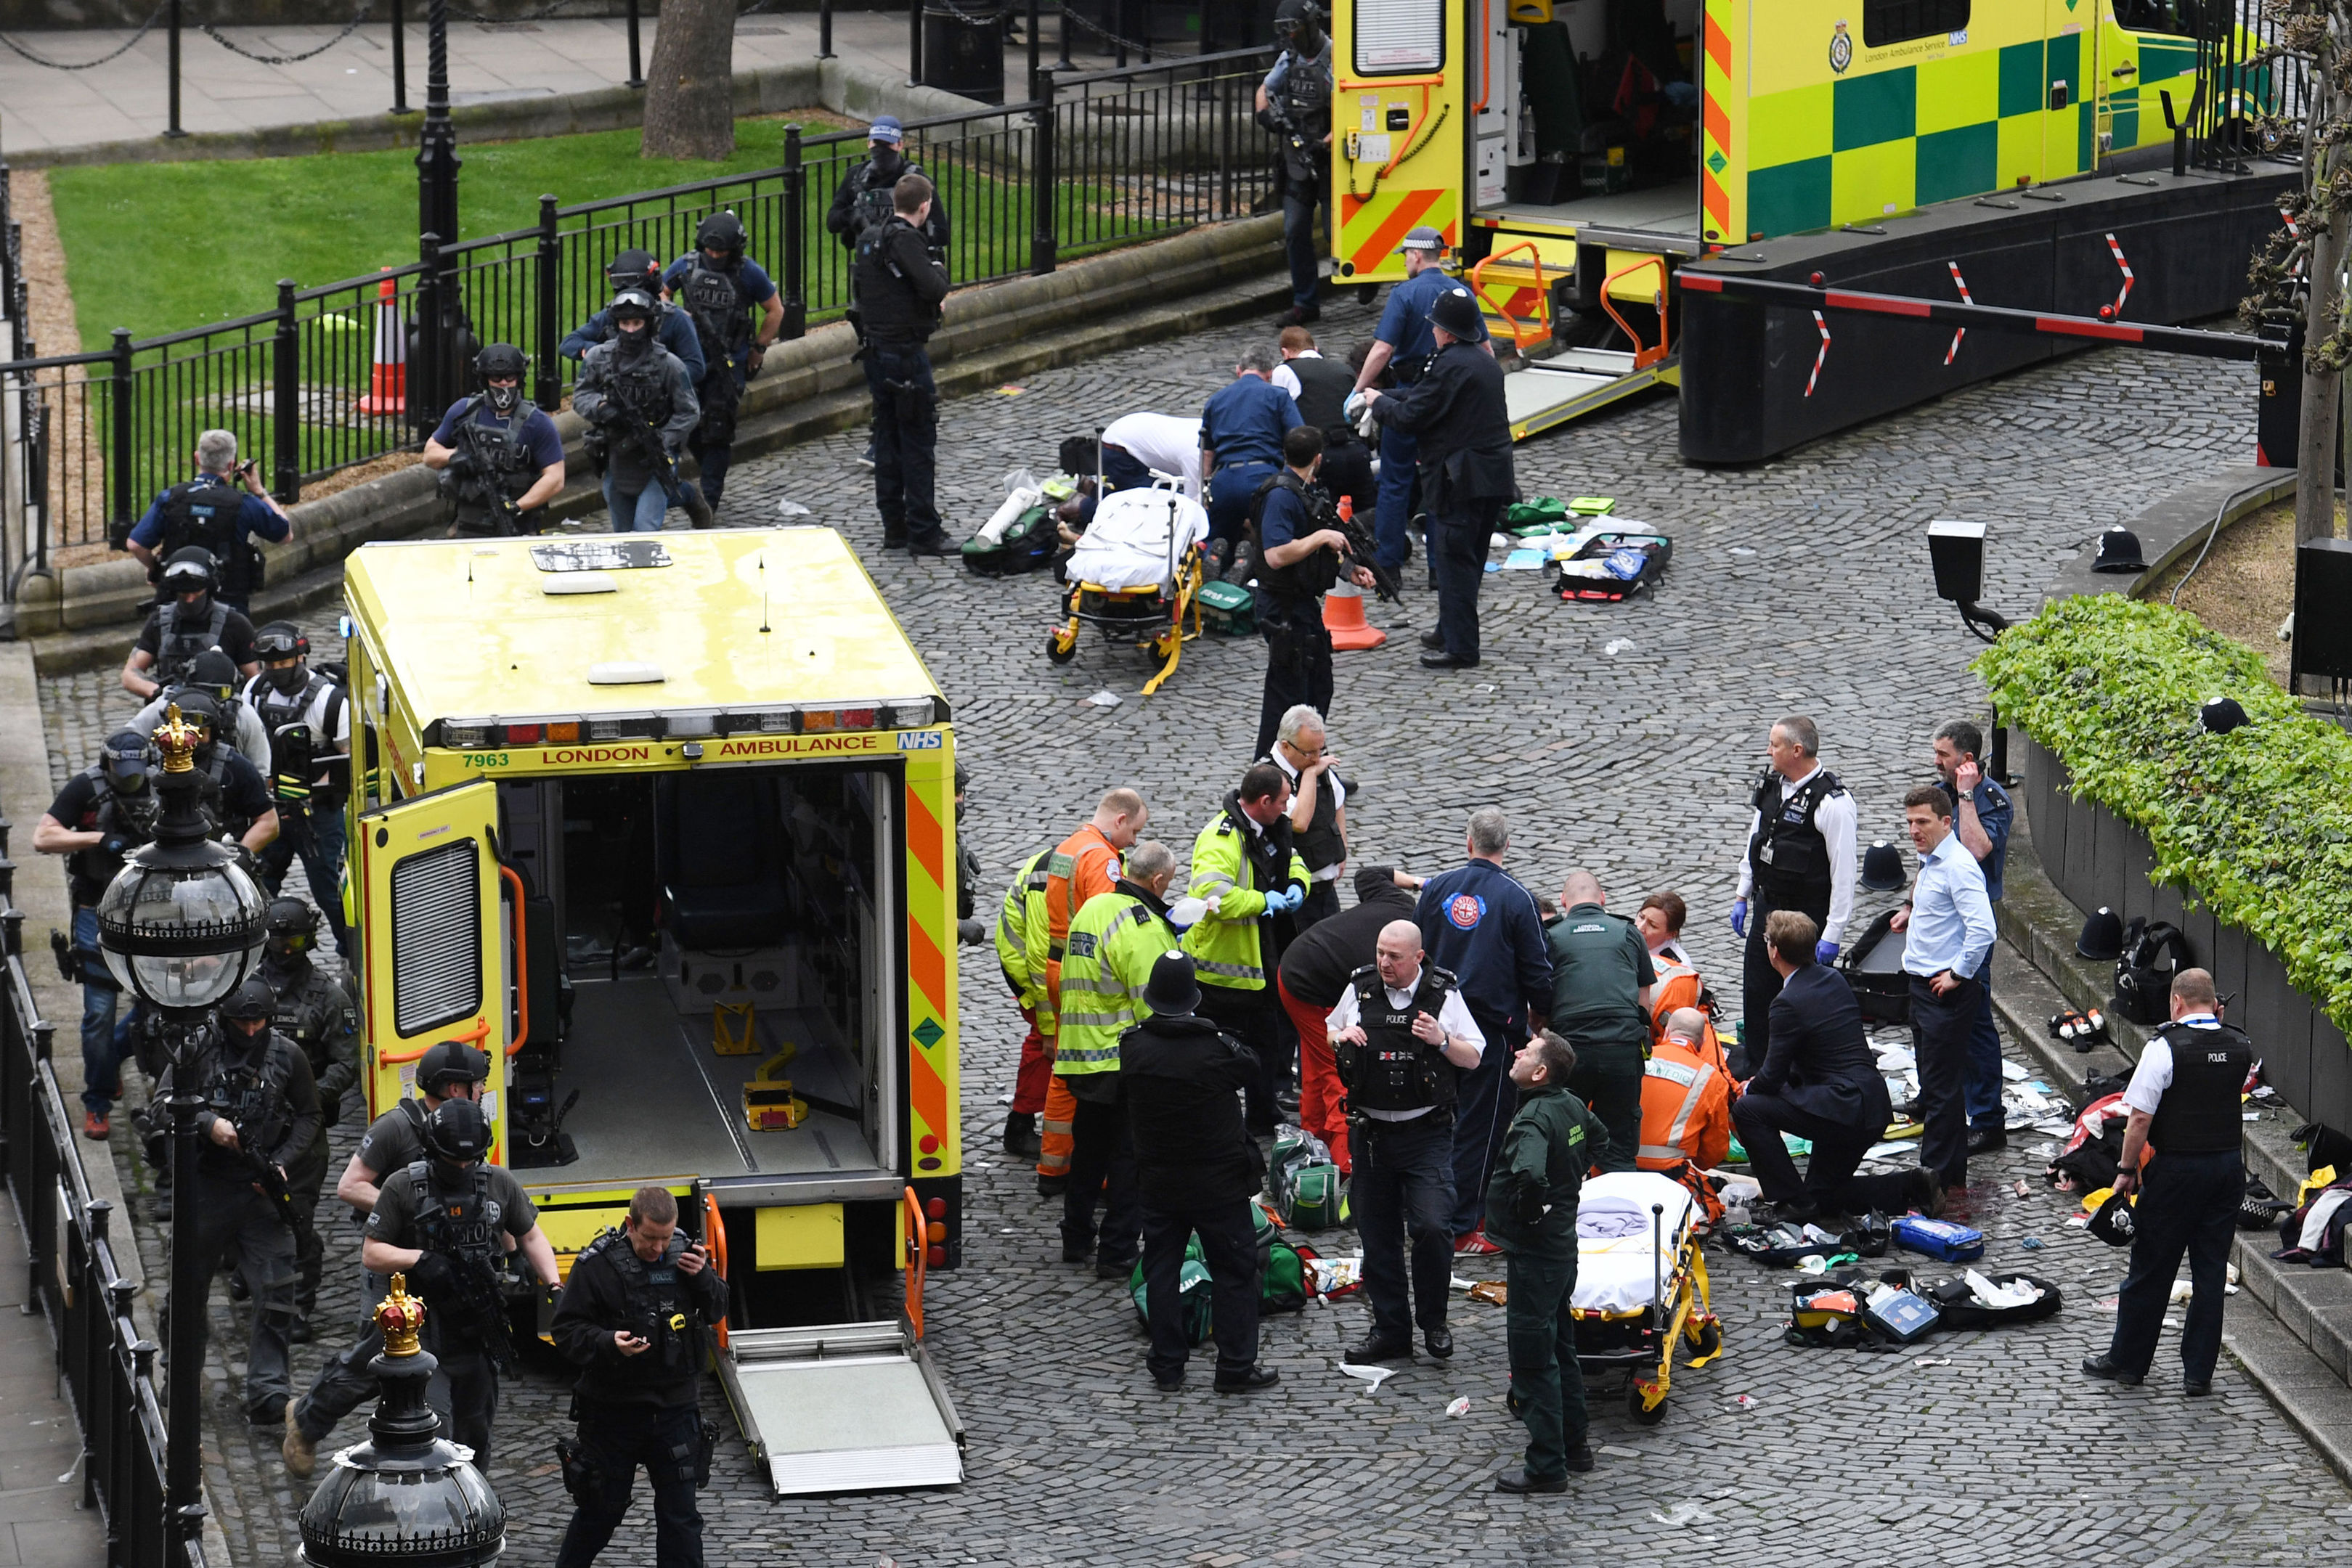 Paramedics treat wounded even as anti-terror police take up positions.